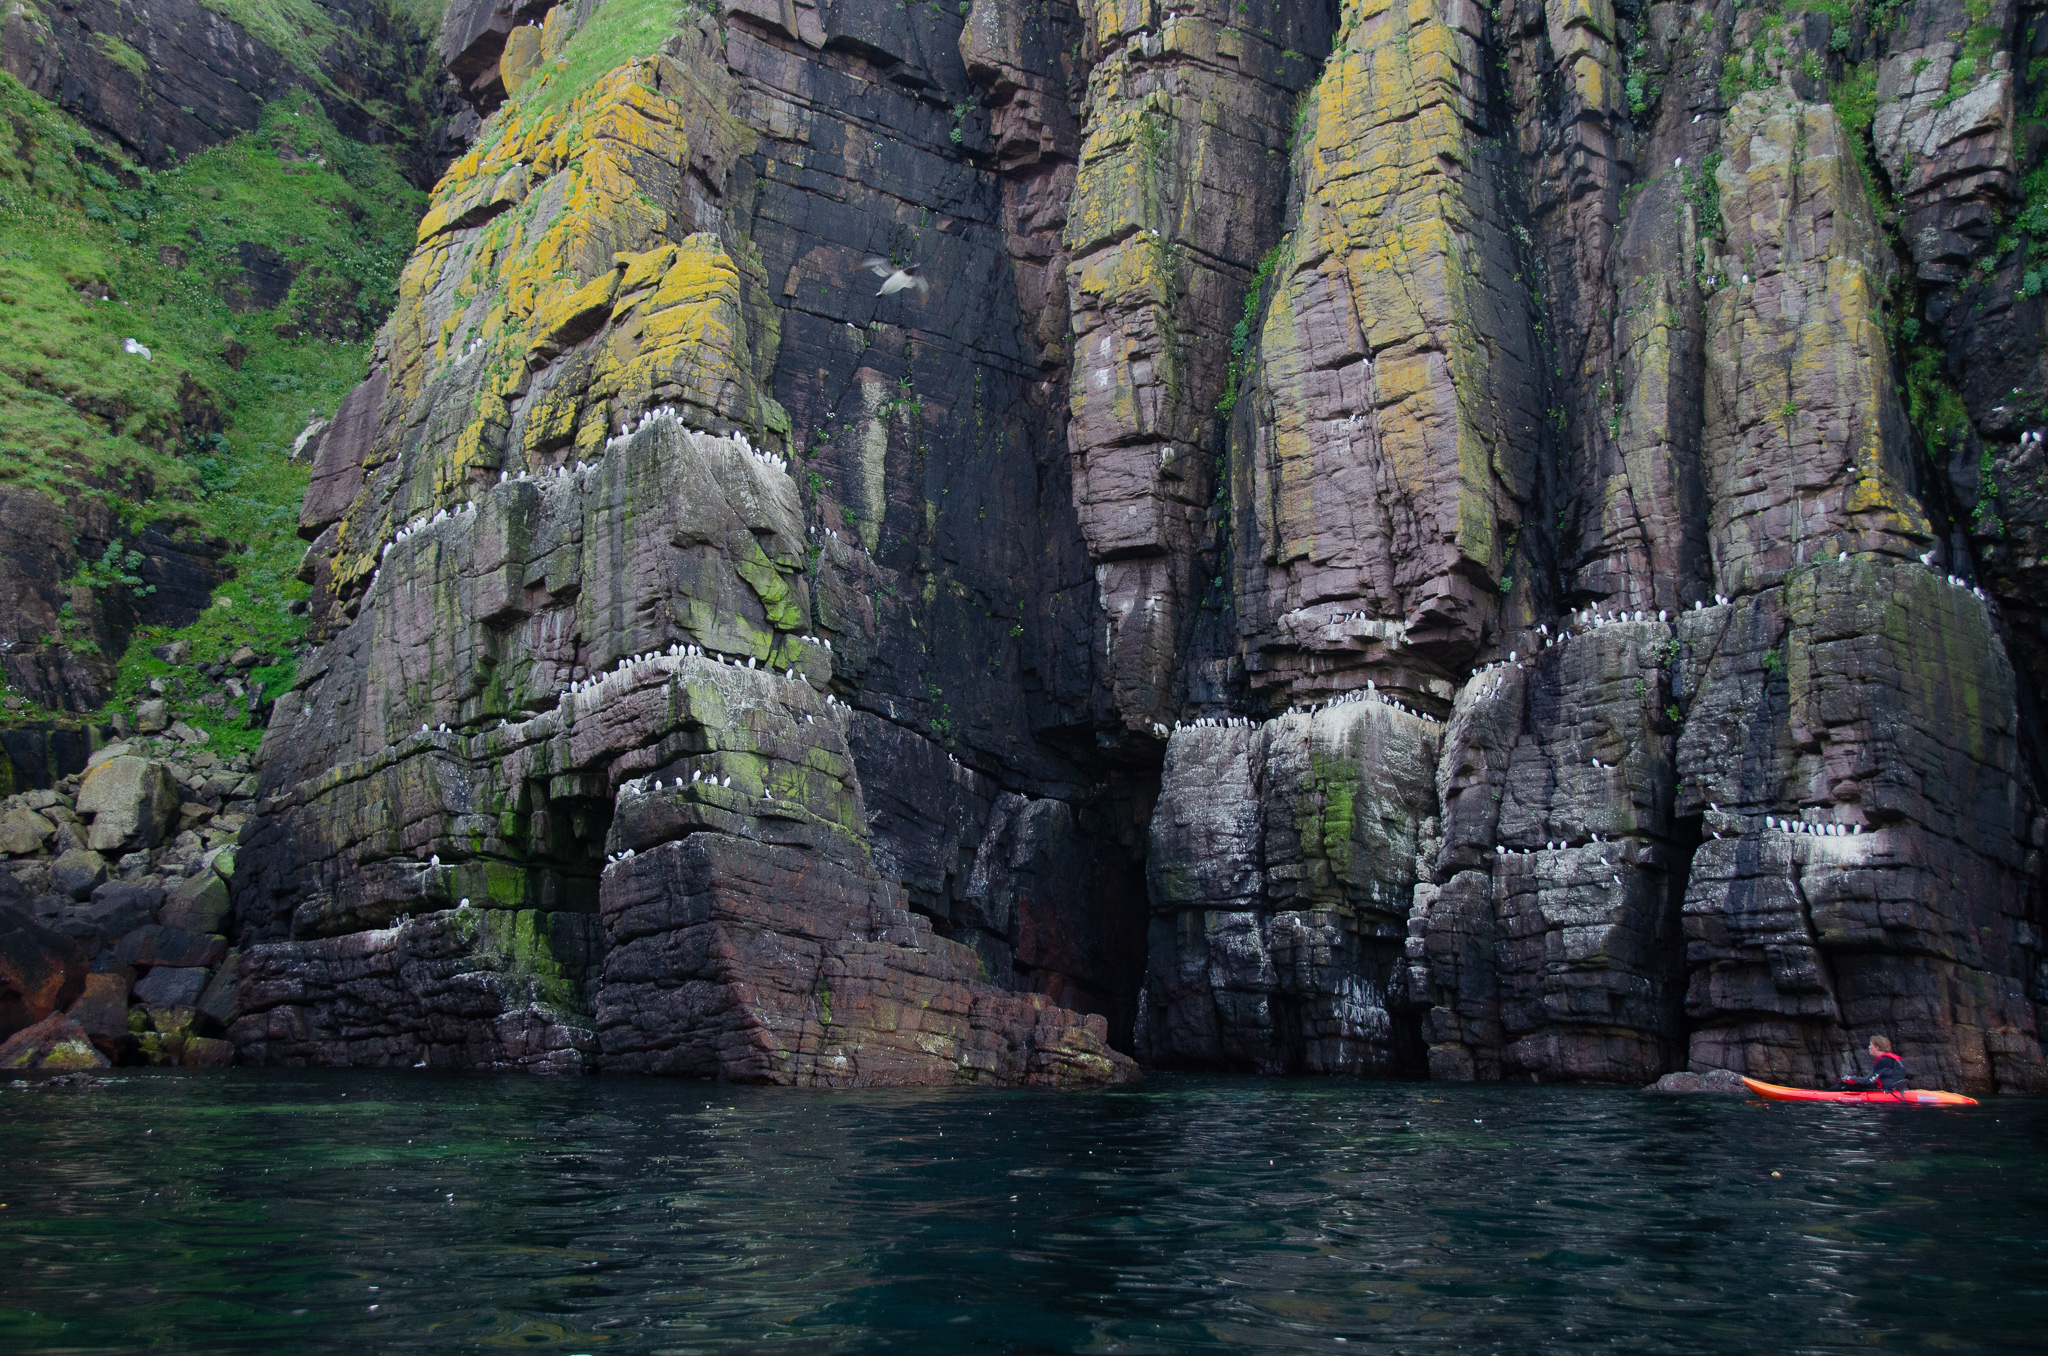 Can you spot the kayak? what an amazing kayaks'-eye view up at the cliffs